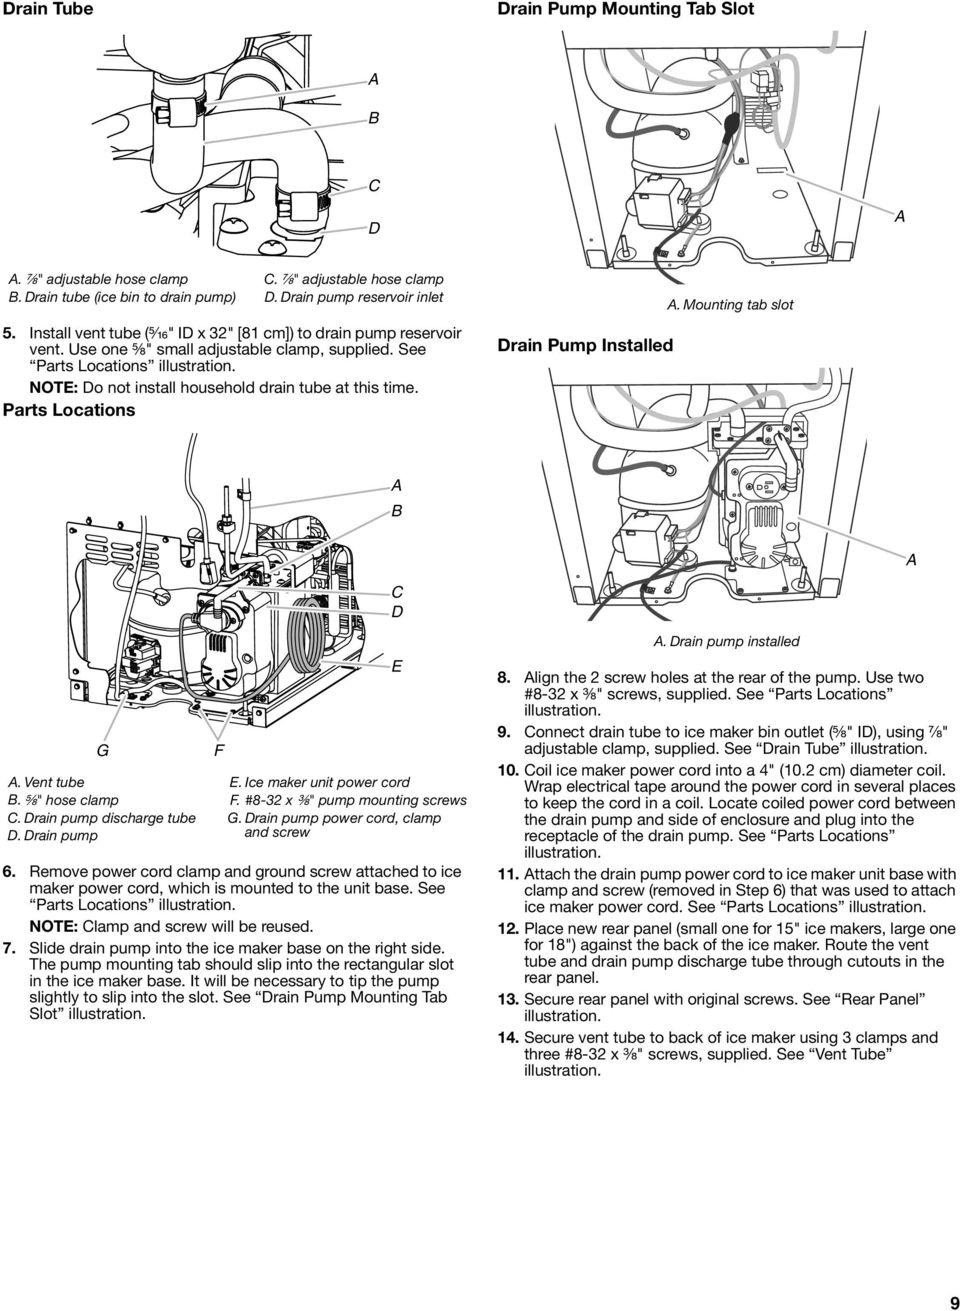 "NOTE: Do not install household drain tube at this time. Parts Locations Drain Pump Installed. Mounting tab slot D G. Vent tube. ⁵ ₈"" hose clamp. Drain pump discharge tube D. Drain pump F E."